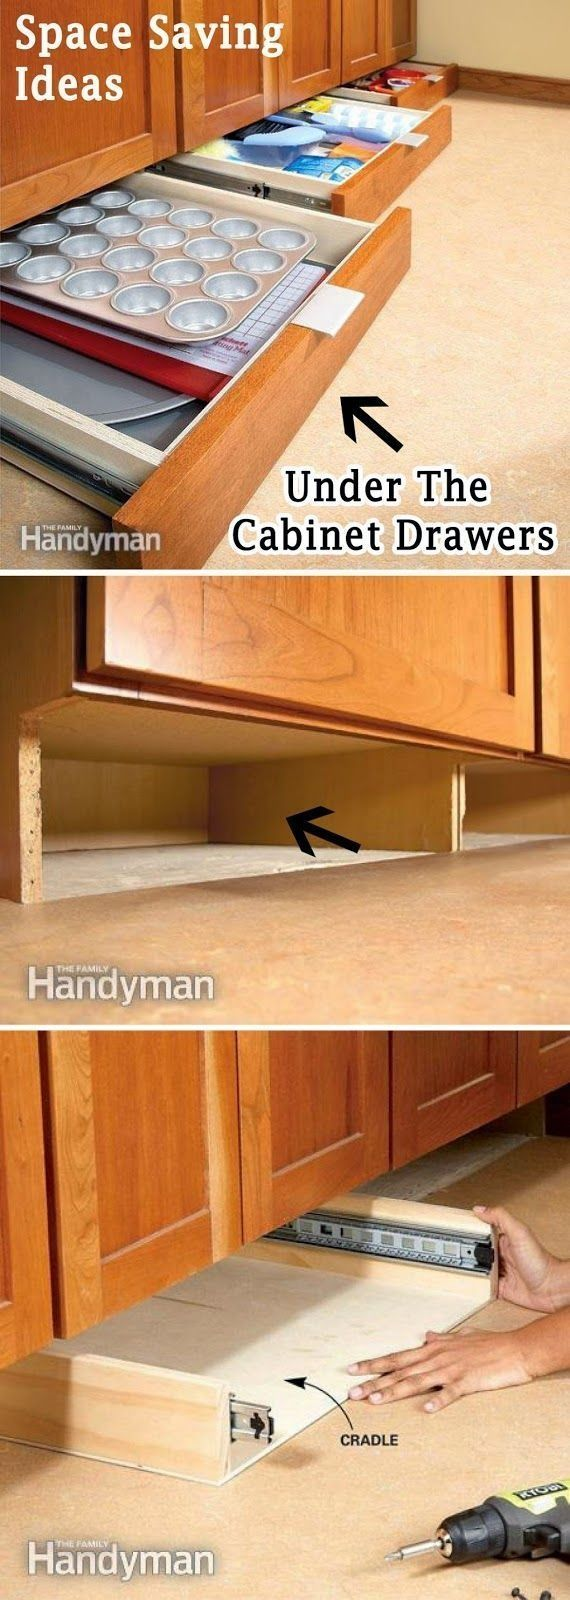 best solution to clean kitchen cabinets 25 best ideas about cabinet storage on 12215